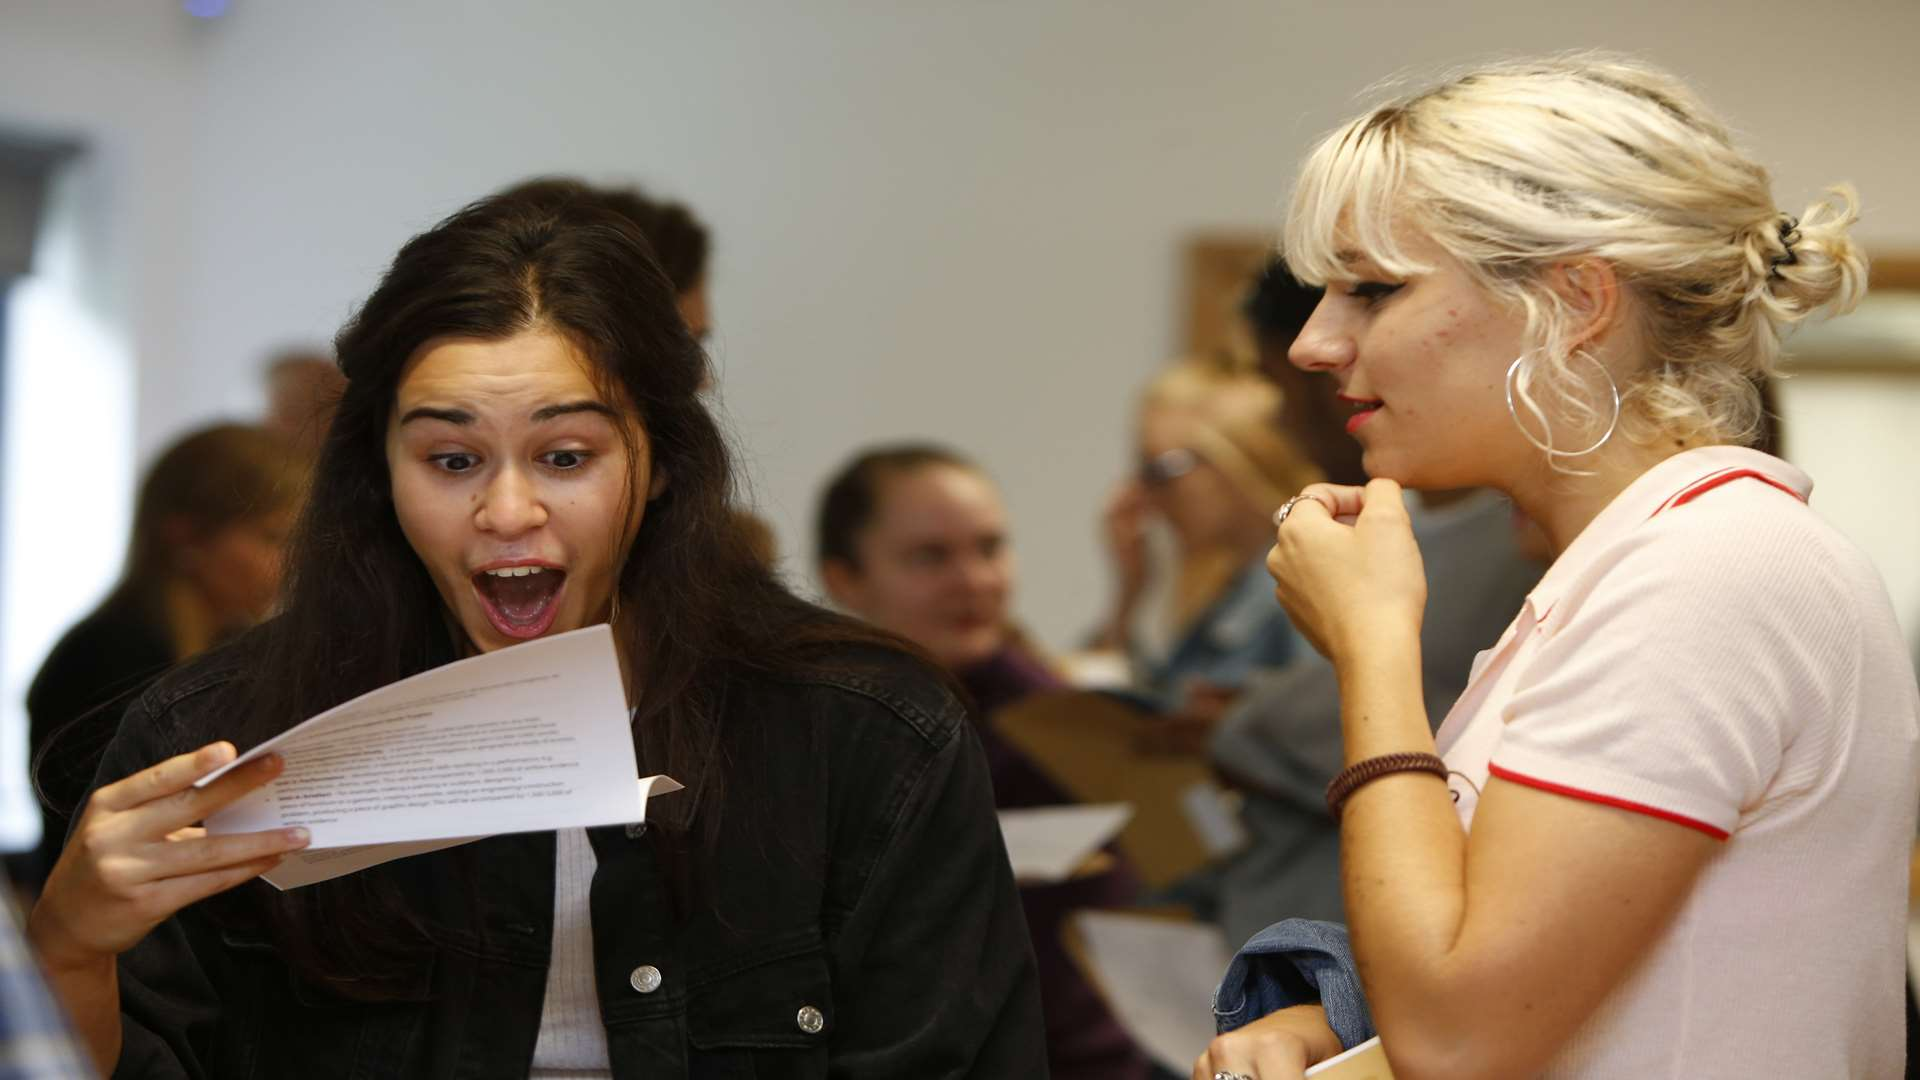 Carys Morgan, left, picks up her A-level results with May Oney at Valley Park secondary school in Maidstone